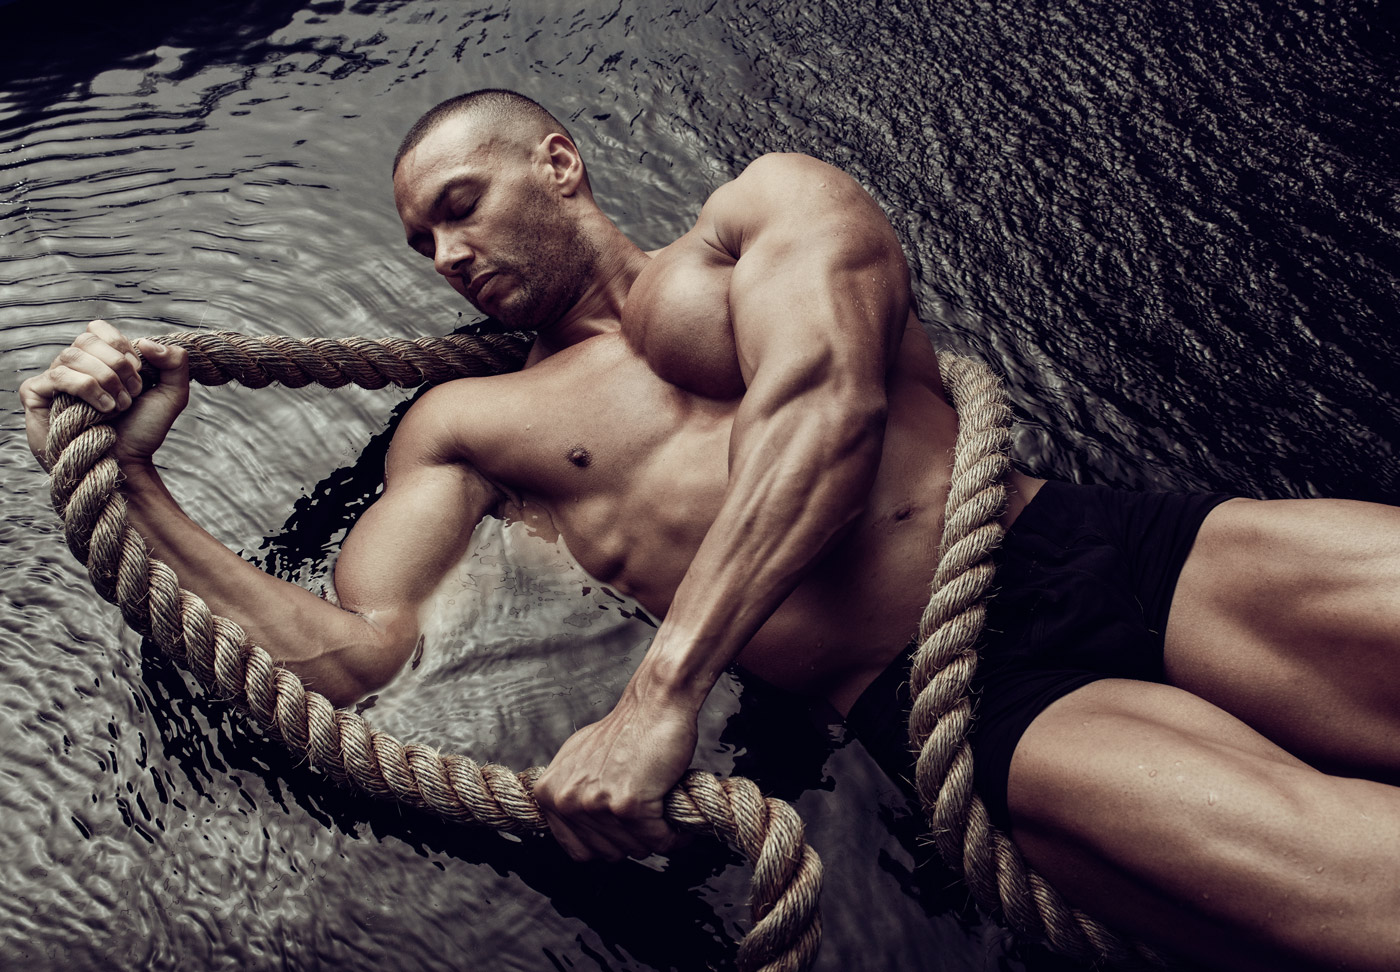 Lewis-water-rope-portrait-by-sane-seven-1400px-wide